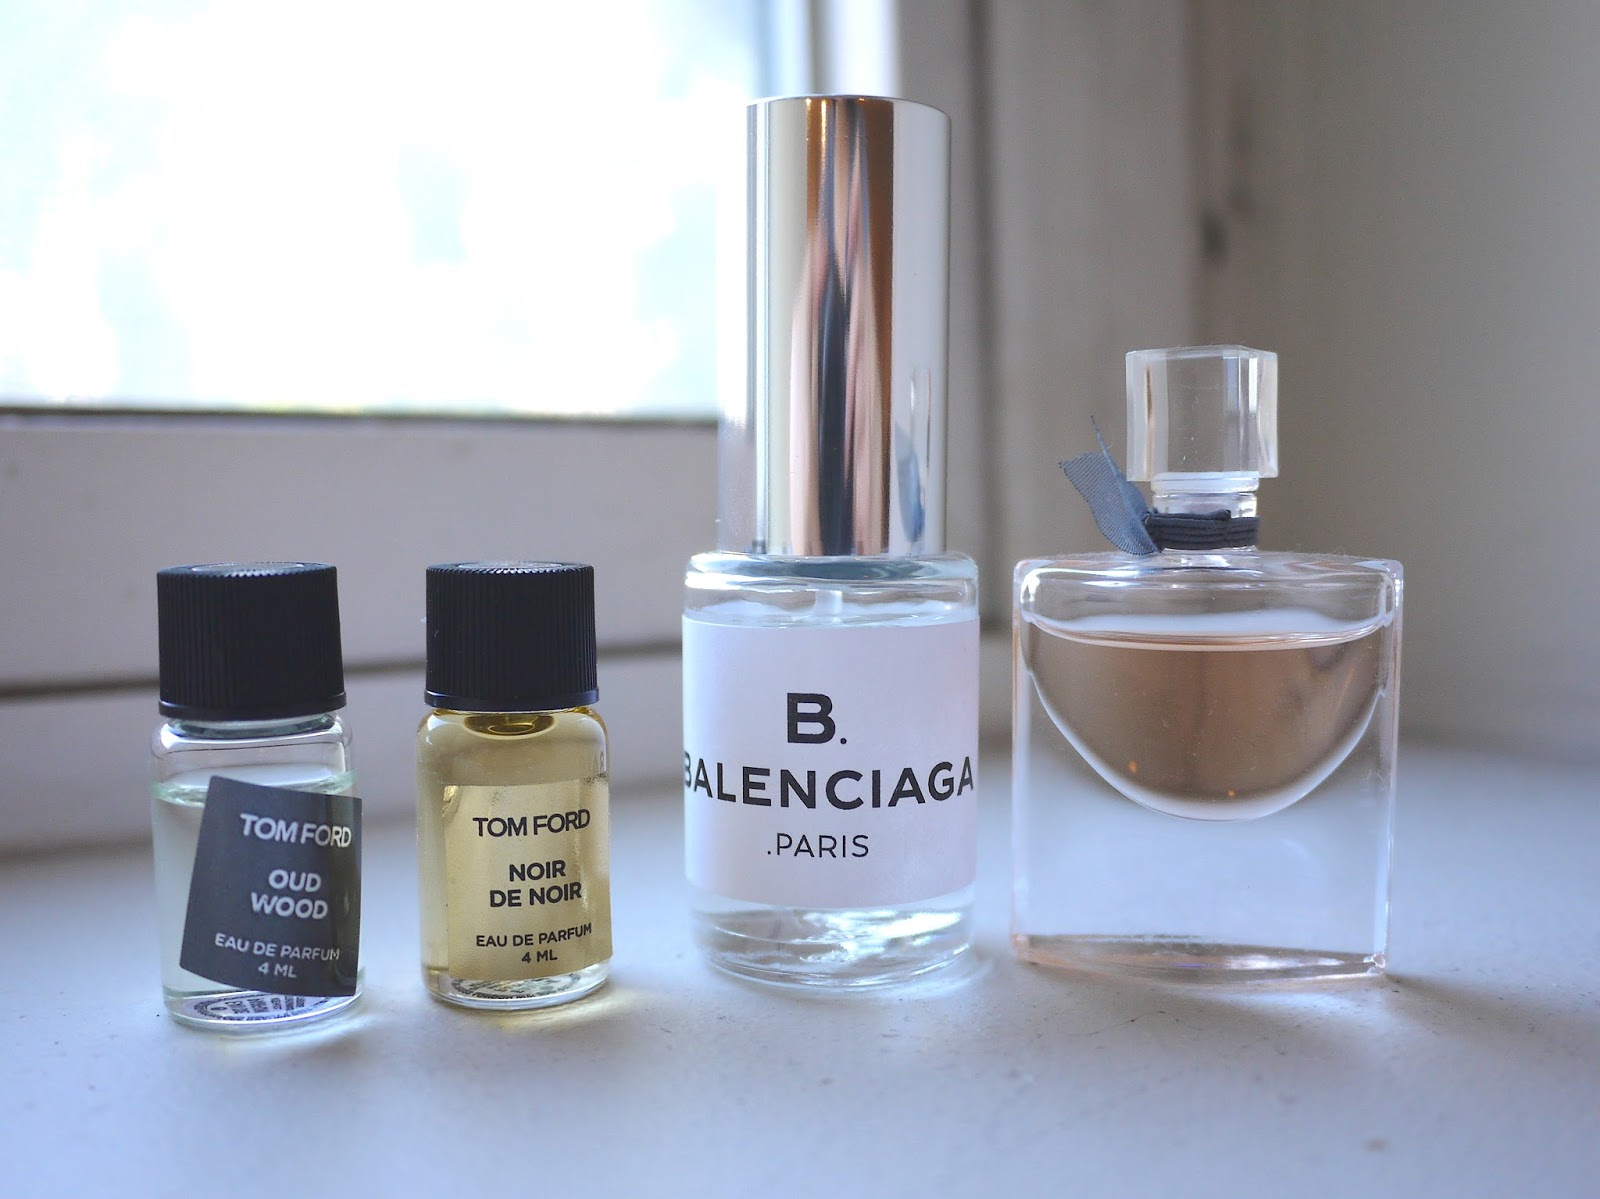 B.Balenciaga perfume review